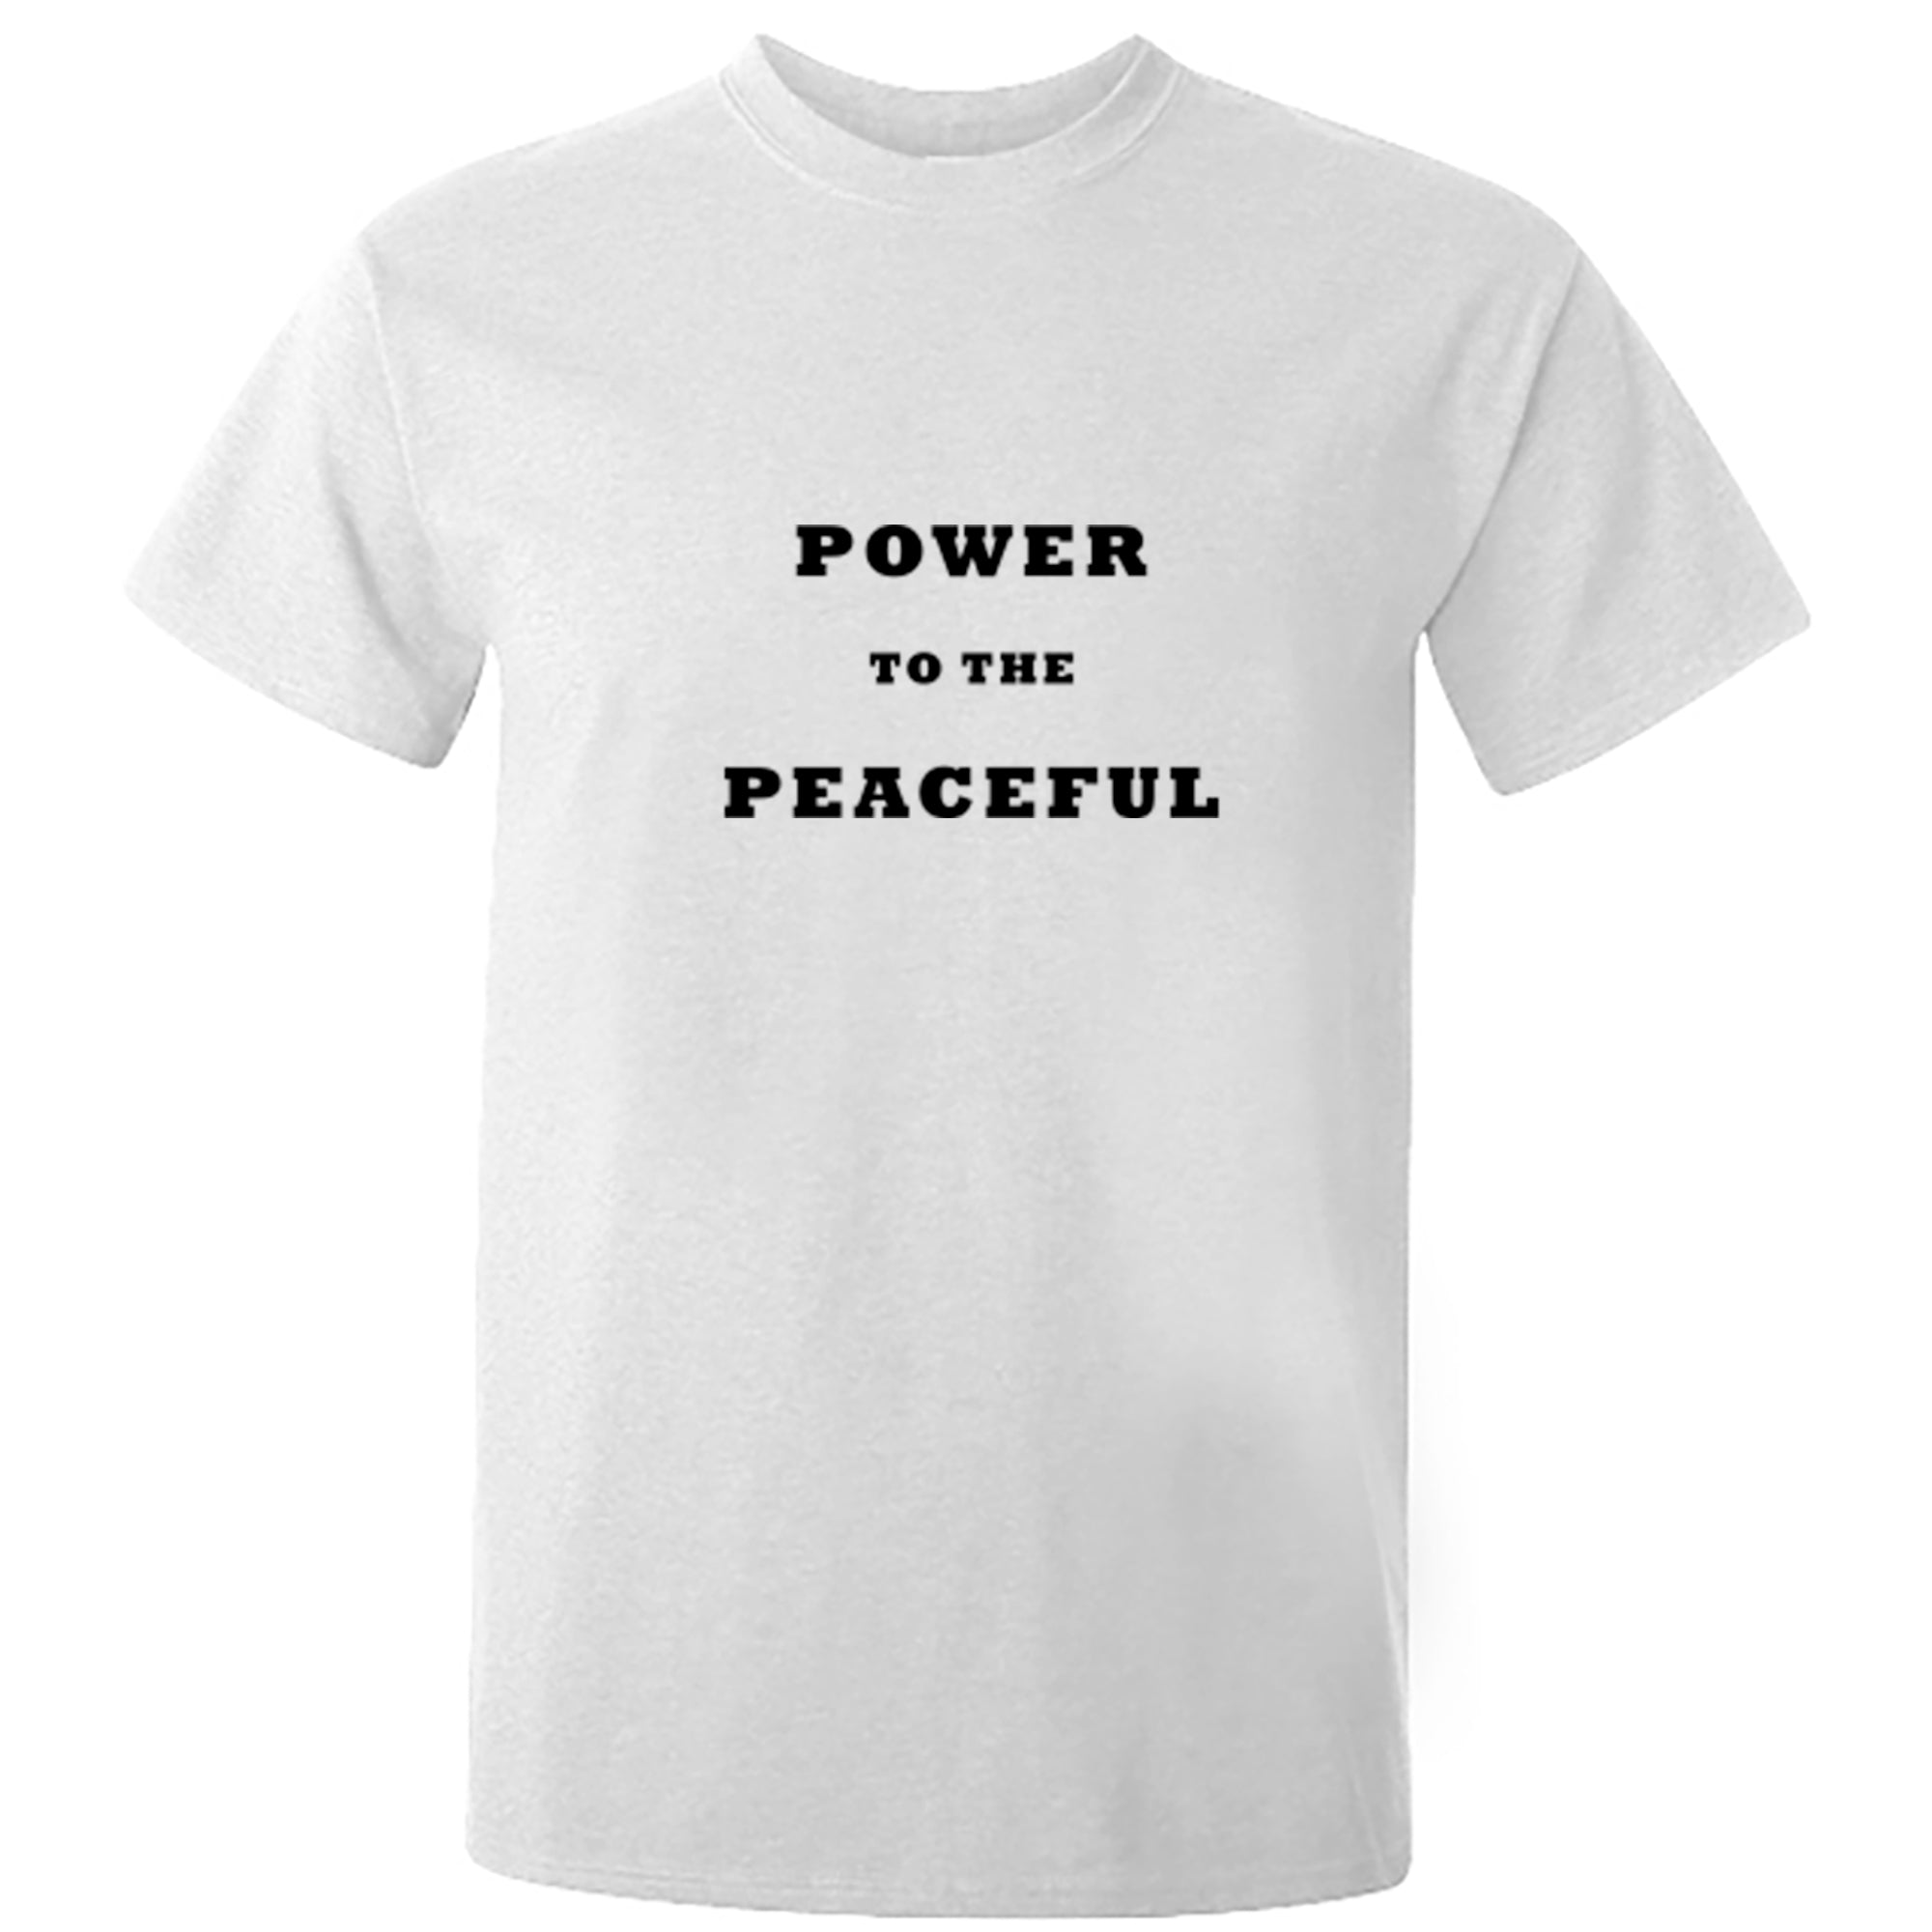 Power To The Peaceful Unisex Fit T-Shirt A0091 - Illustrated Identity Ltd.